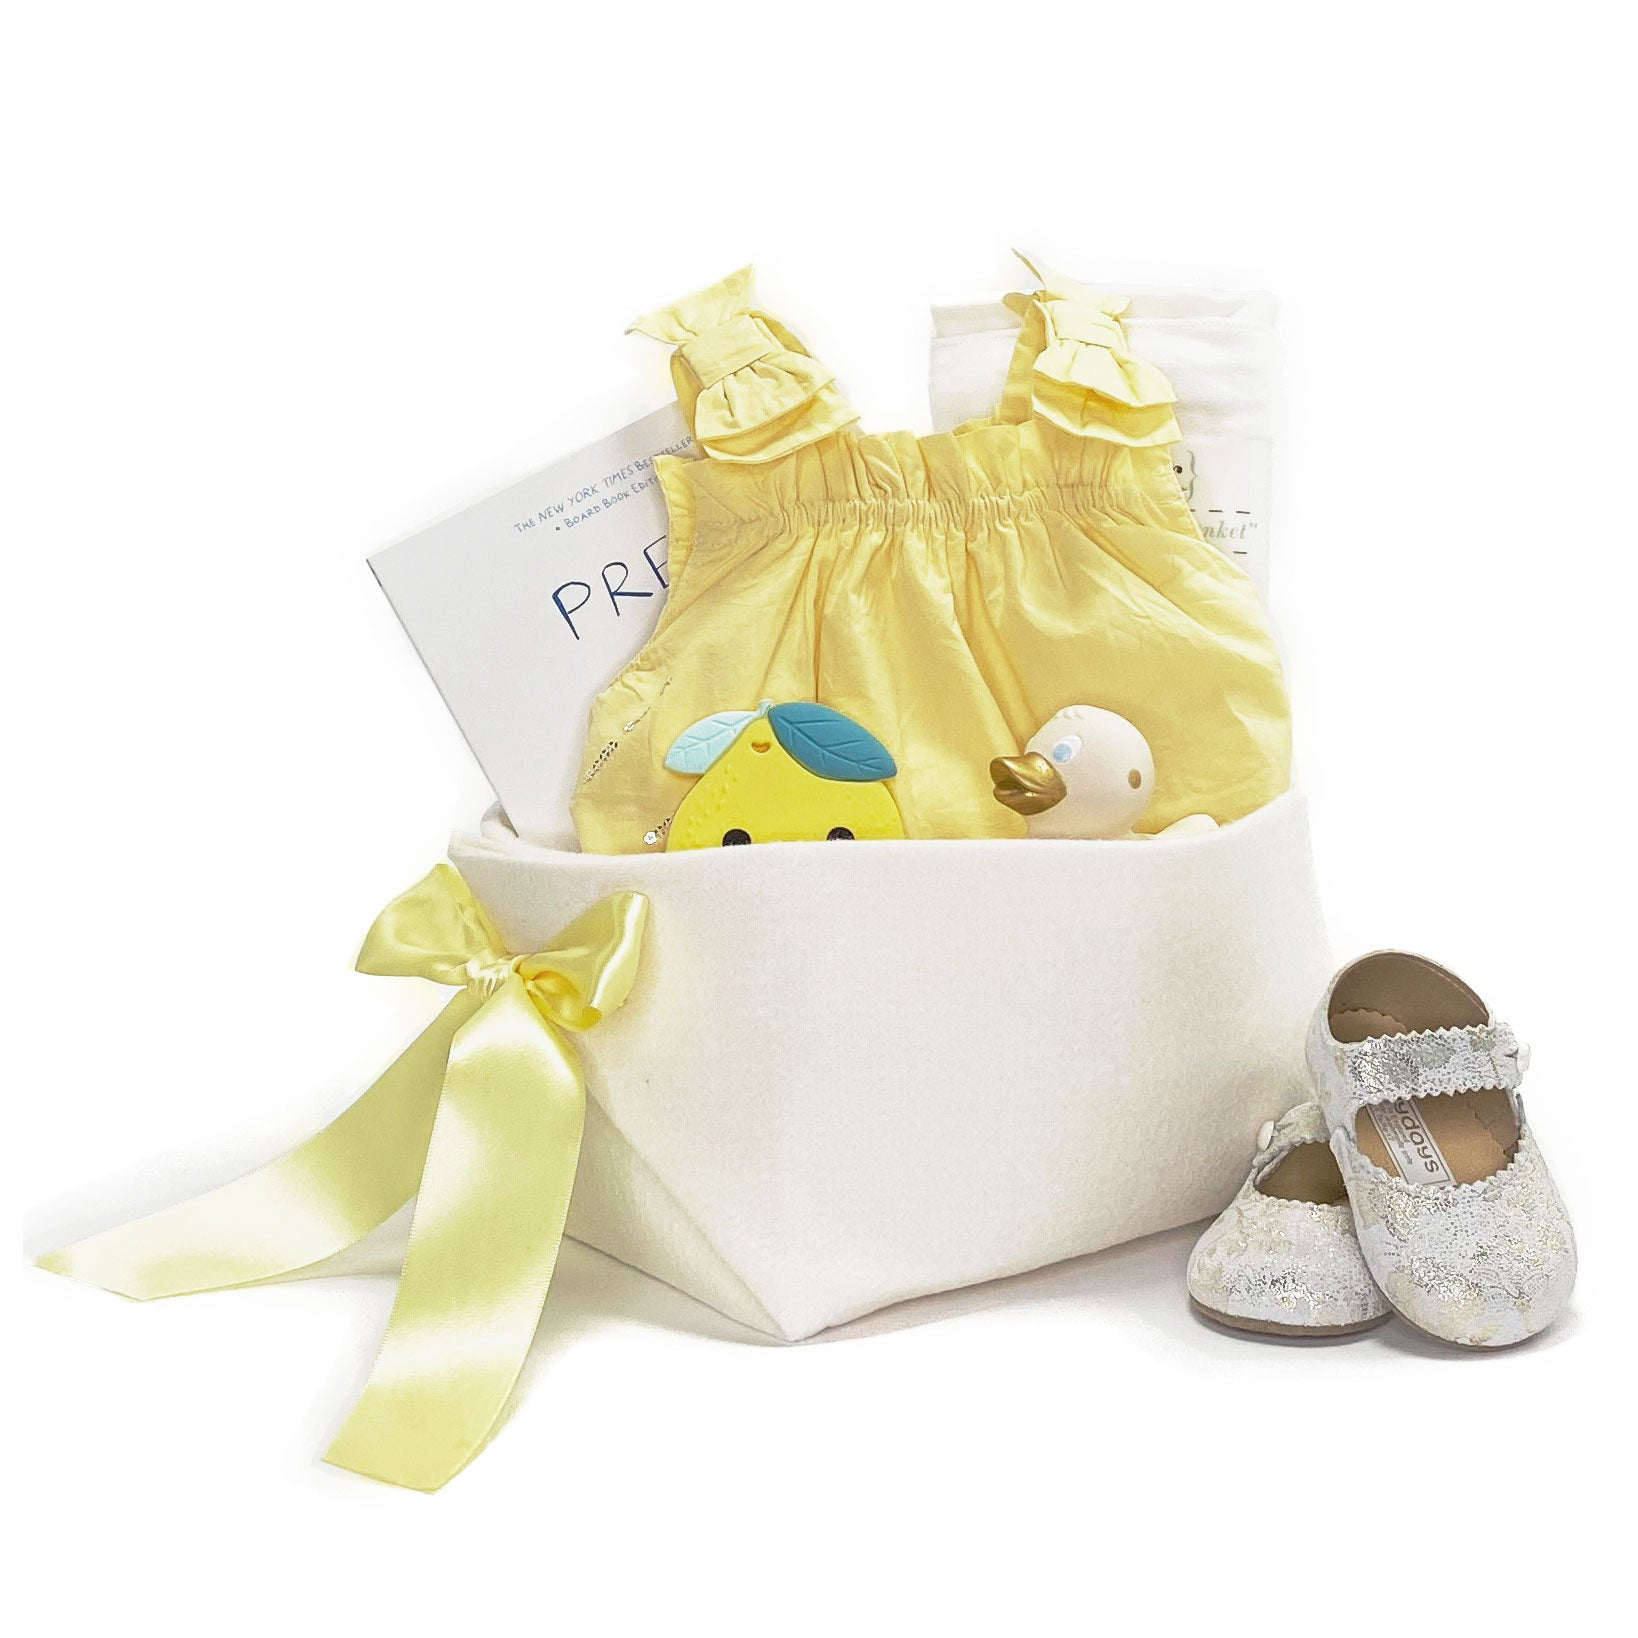 Luxury Baby Girl Gift Basket at Bonjour Baby Baskets